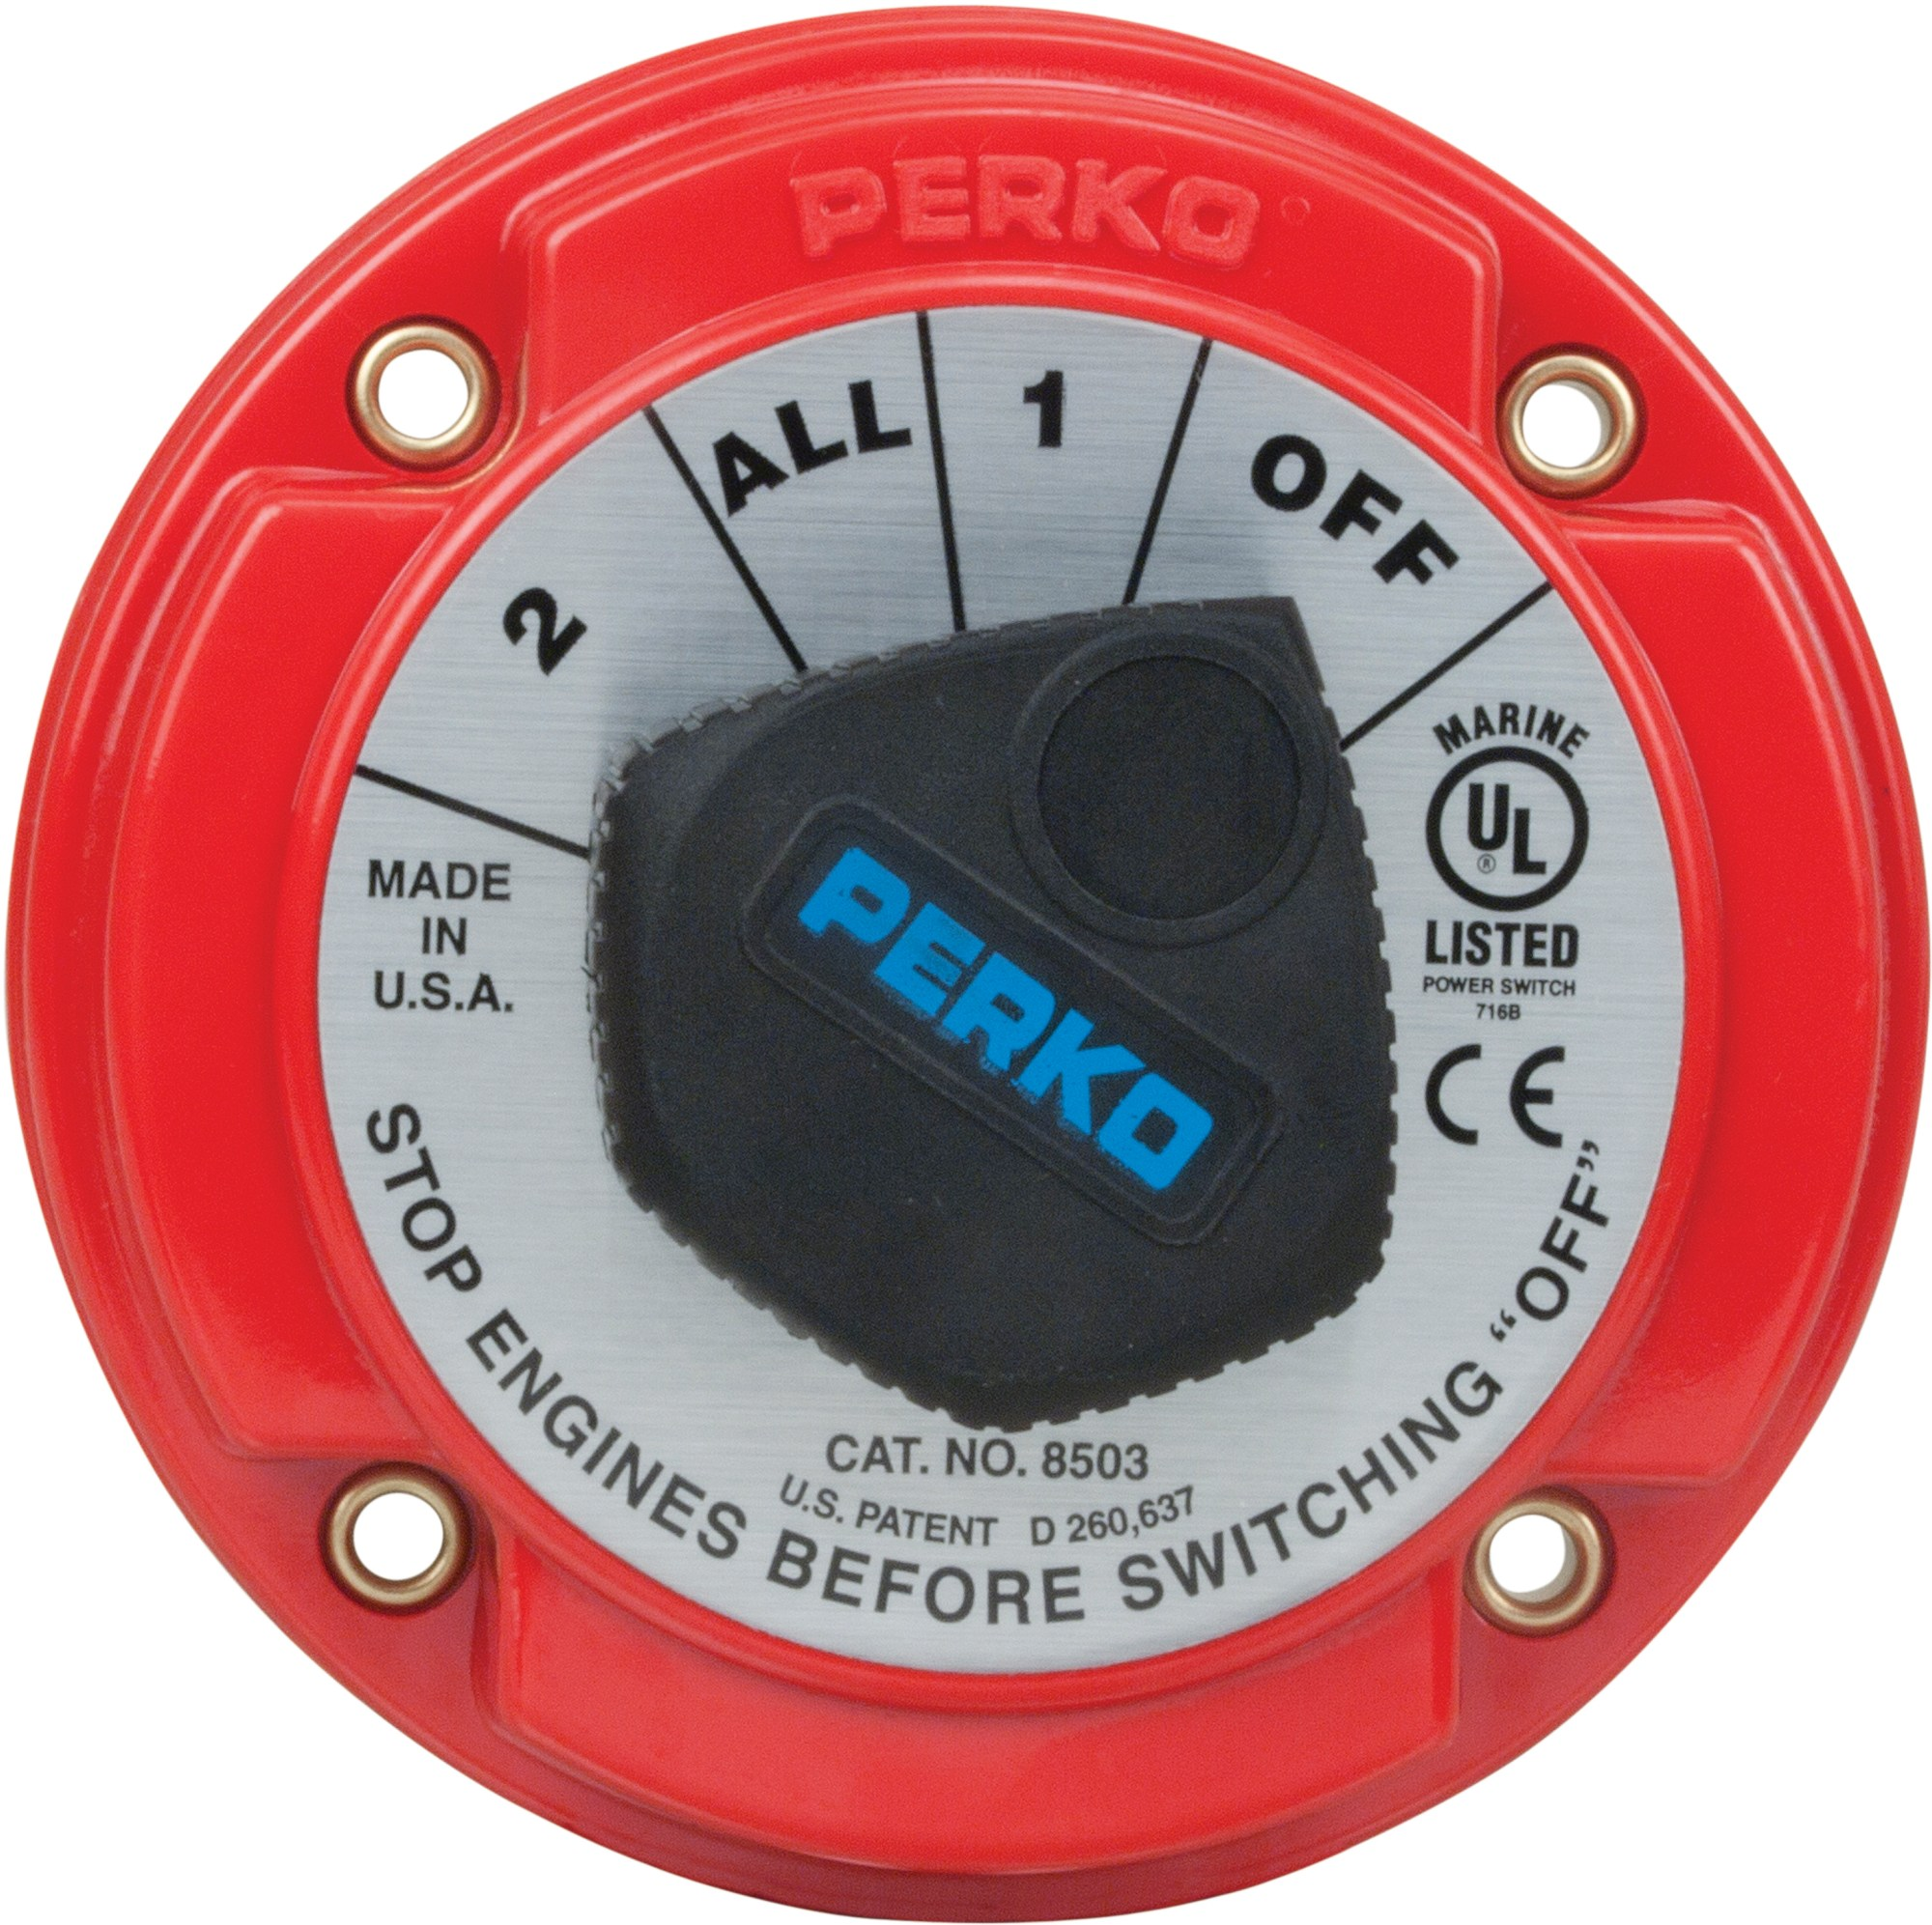 hight resolution of perko inc catalog battery switches medium duty battery selector switch with afd 8503